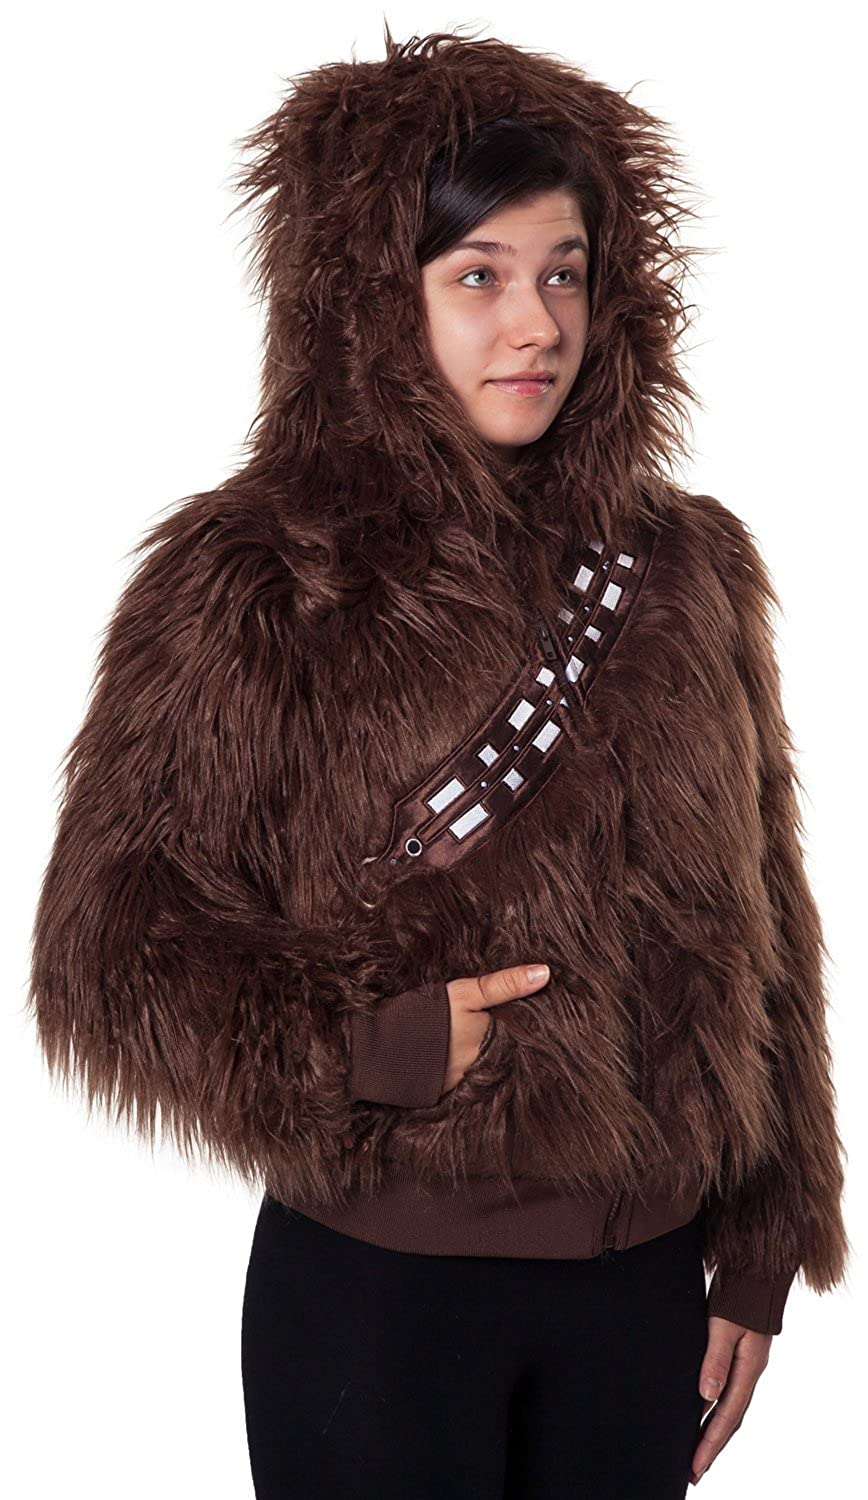 Amazoncom Ladies Star Wars Chewbacca Faux Fur Zip Hoodie Clothing - Hoodie will turn you into chewbacca from star wars